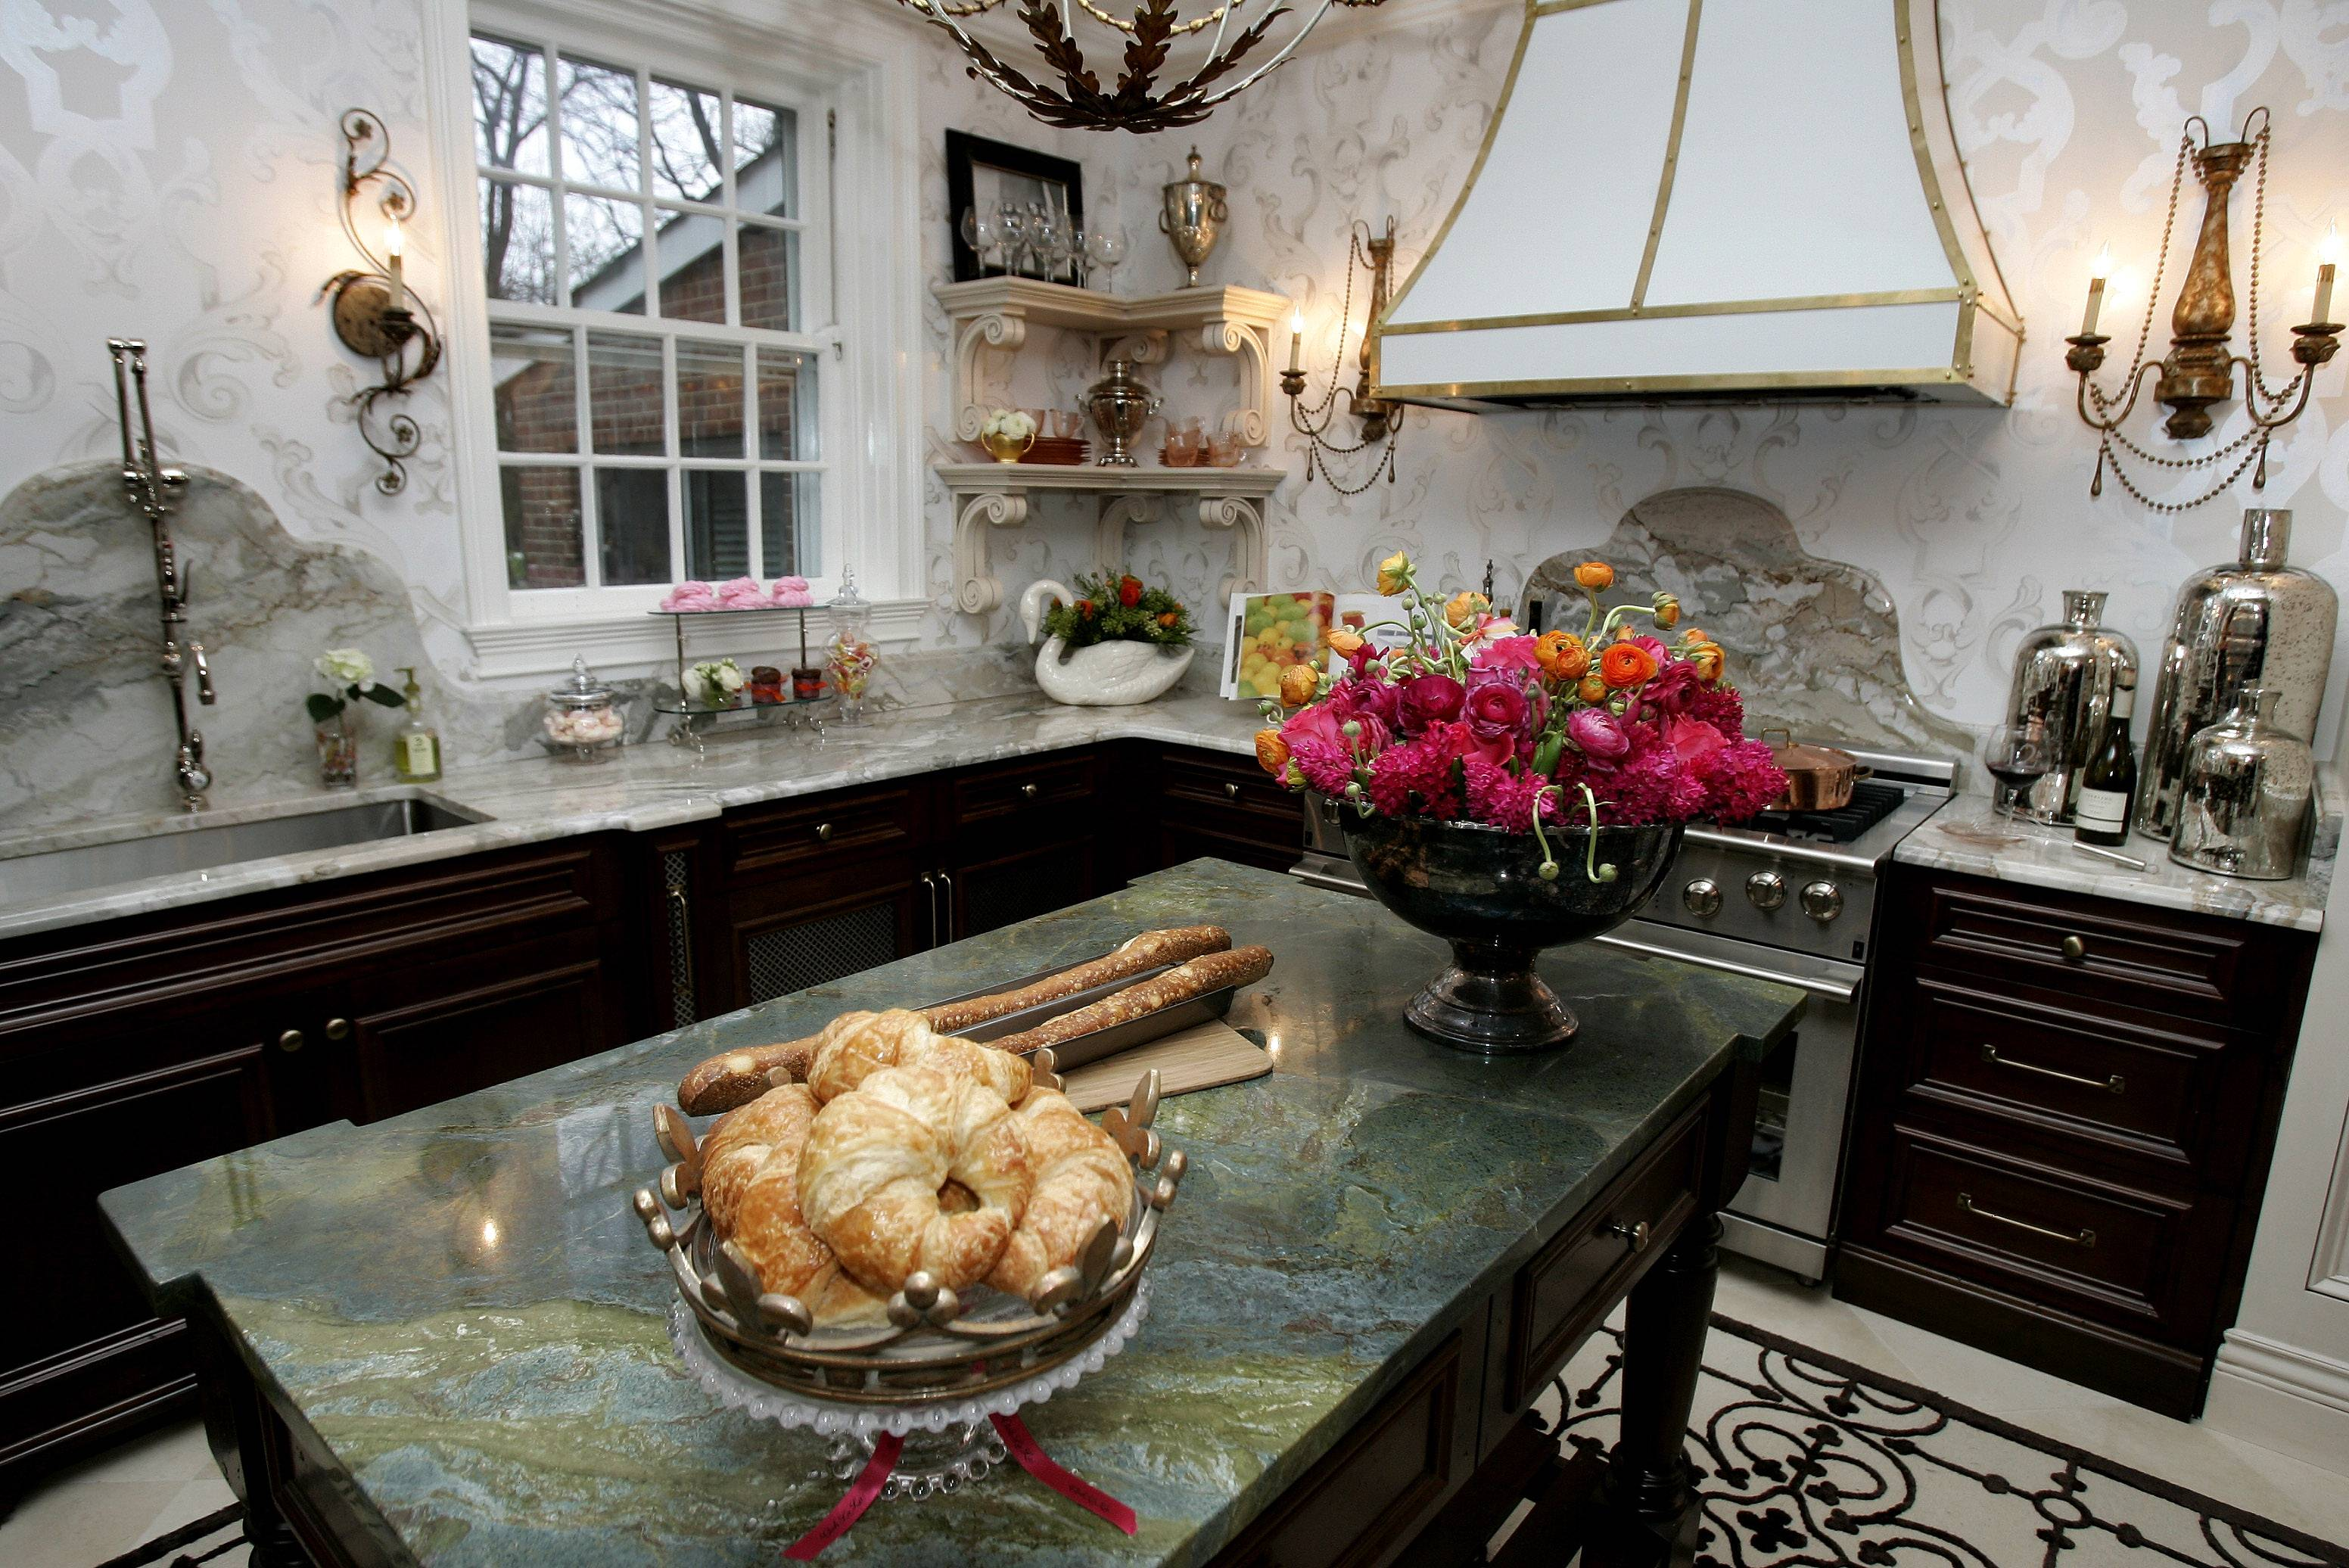 Big islands need big things on them, such as large bowls or trays, says Sara Peterson, editor-in-chief of HGTV Magazine.